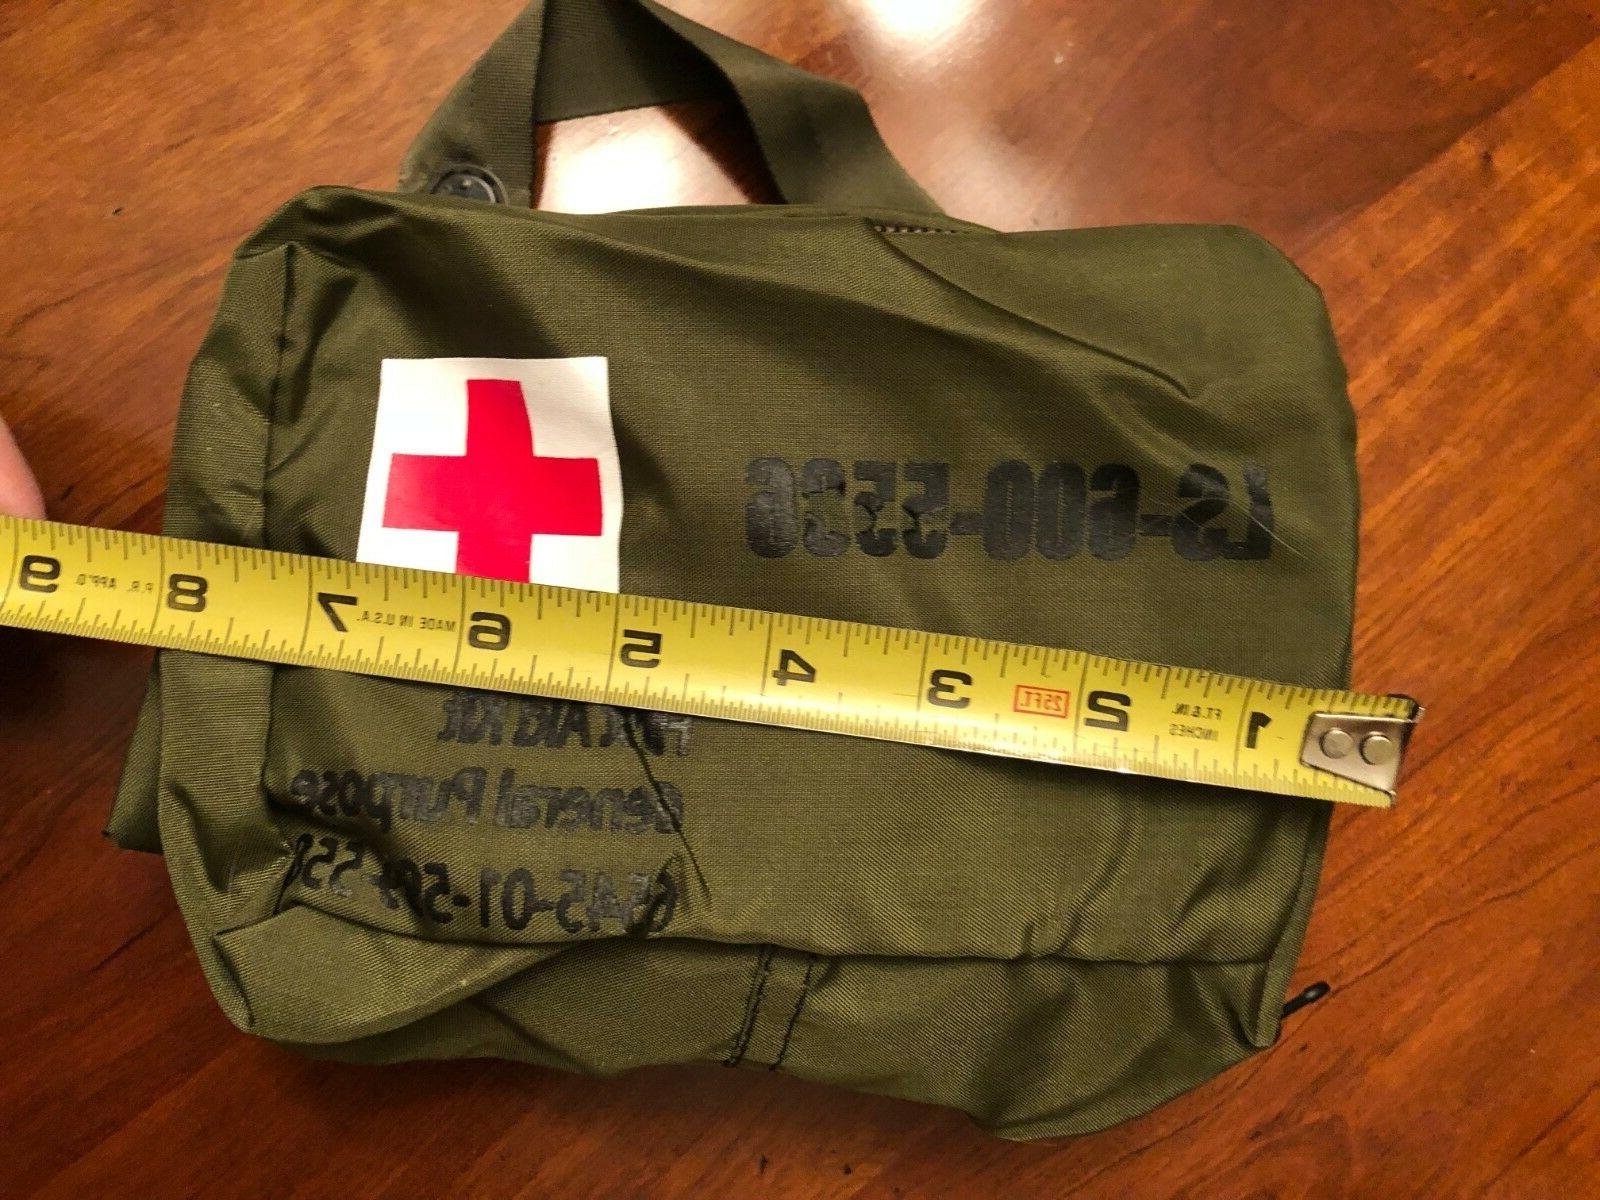 Travel/Hunting Kit Emergency Bag for Survival